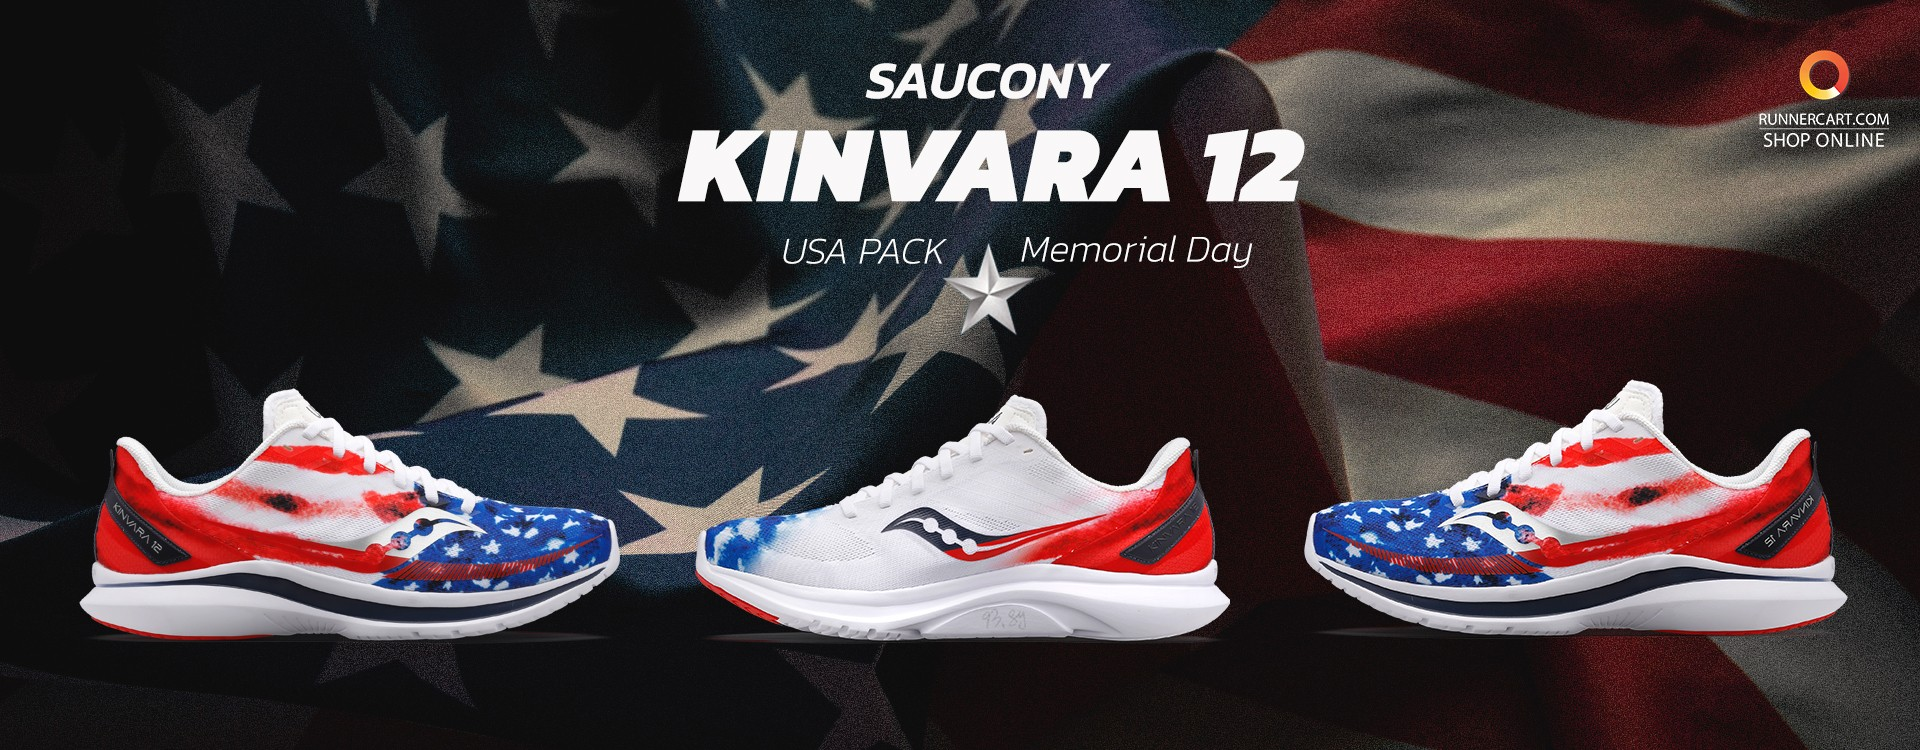 """Saucony Kinvara 12 - USA Pack Limited Edition """"Memorial Day"""""""